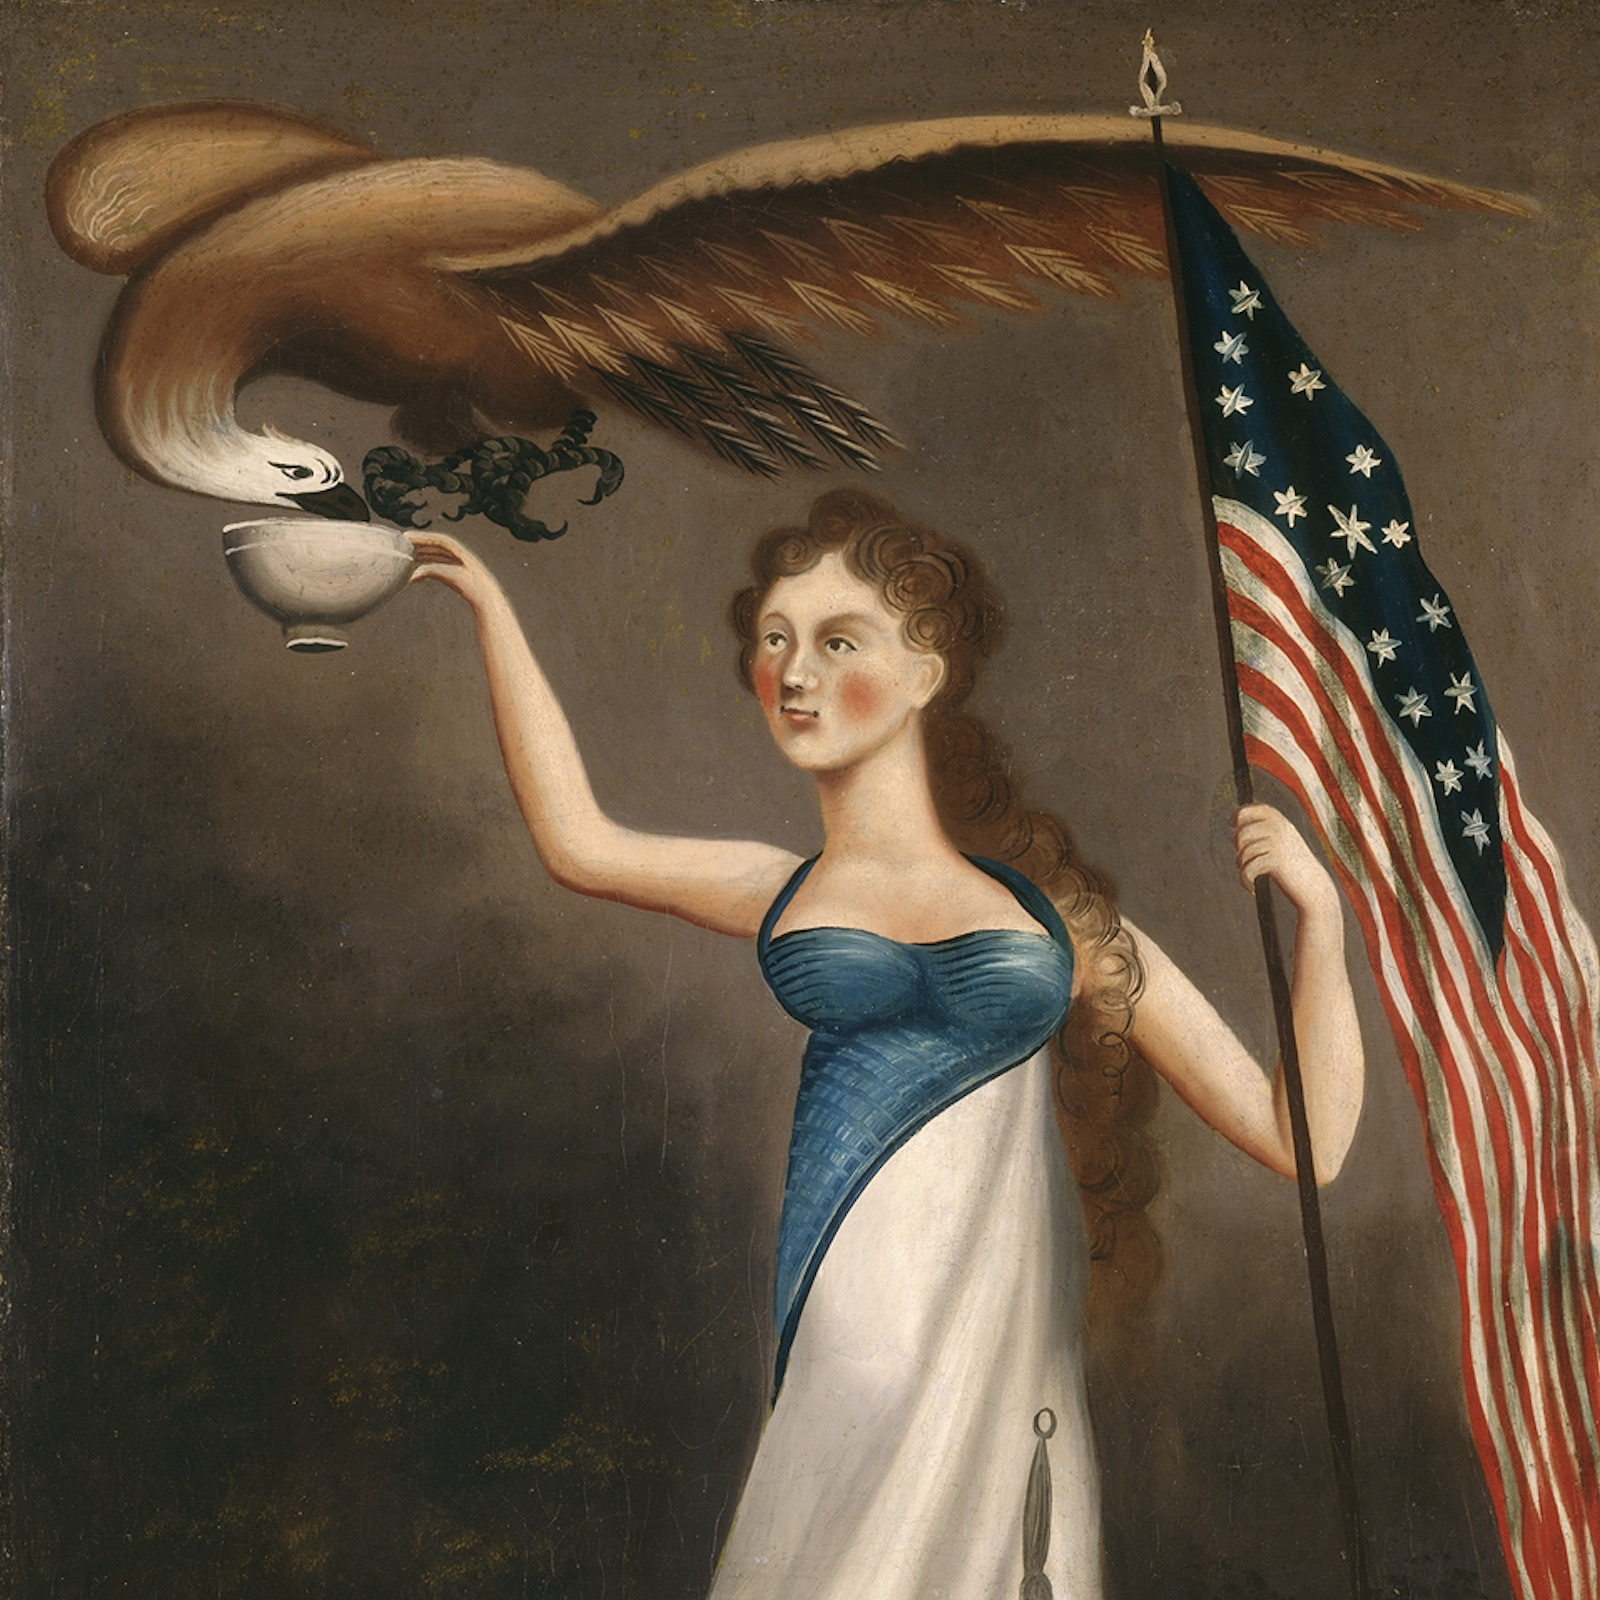 This nineteenth century painting of Liberty symbolizes one of the major achievements of the American Revolution.